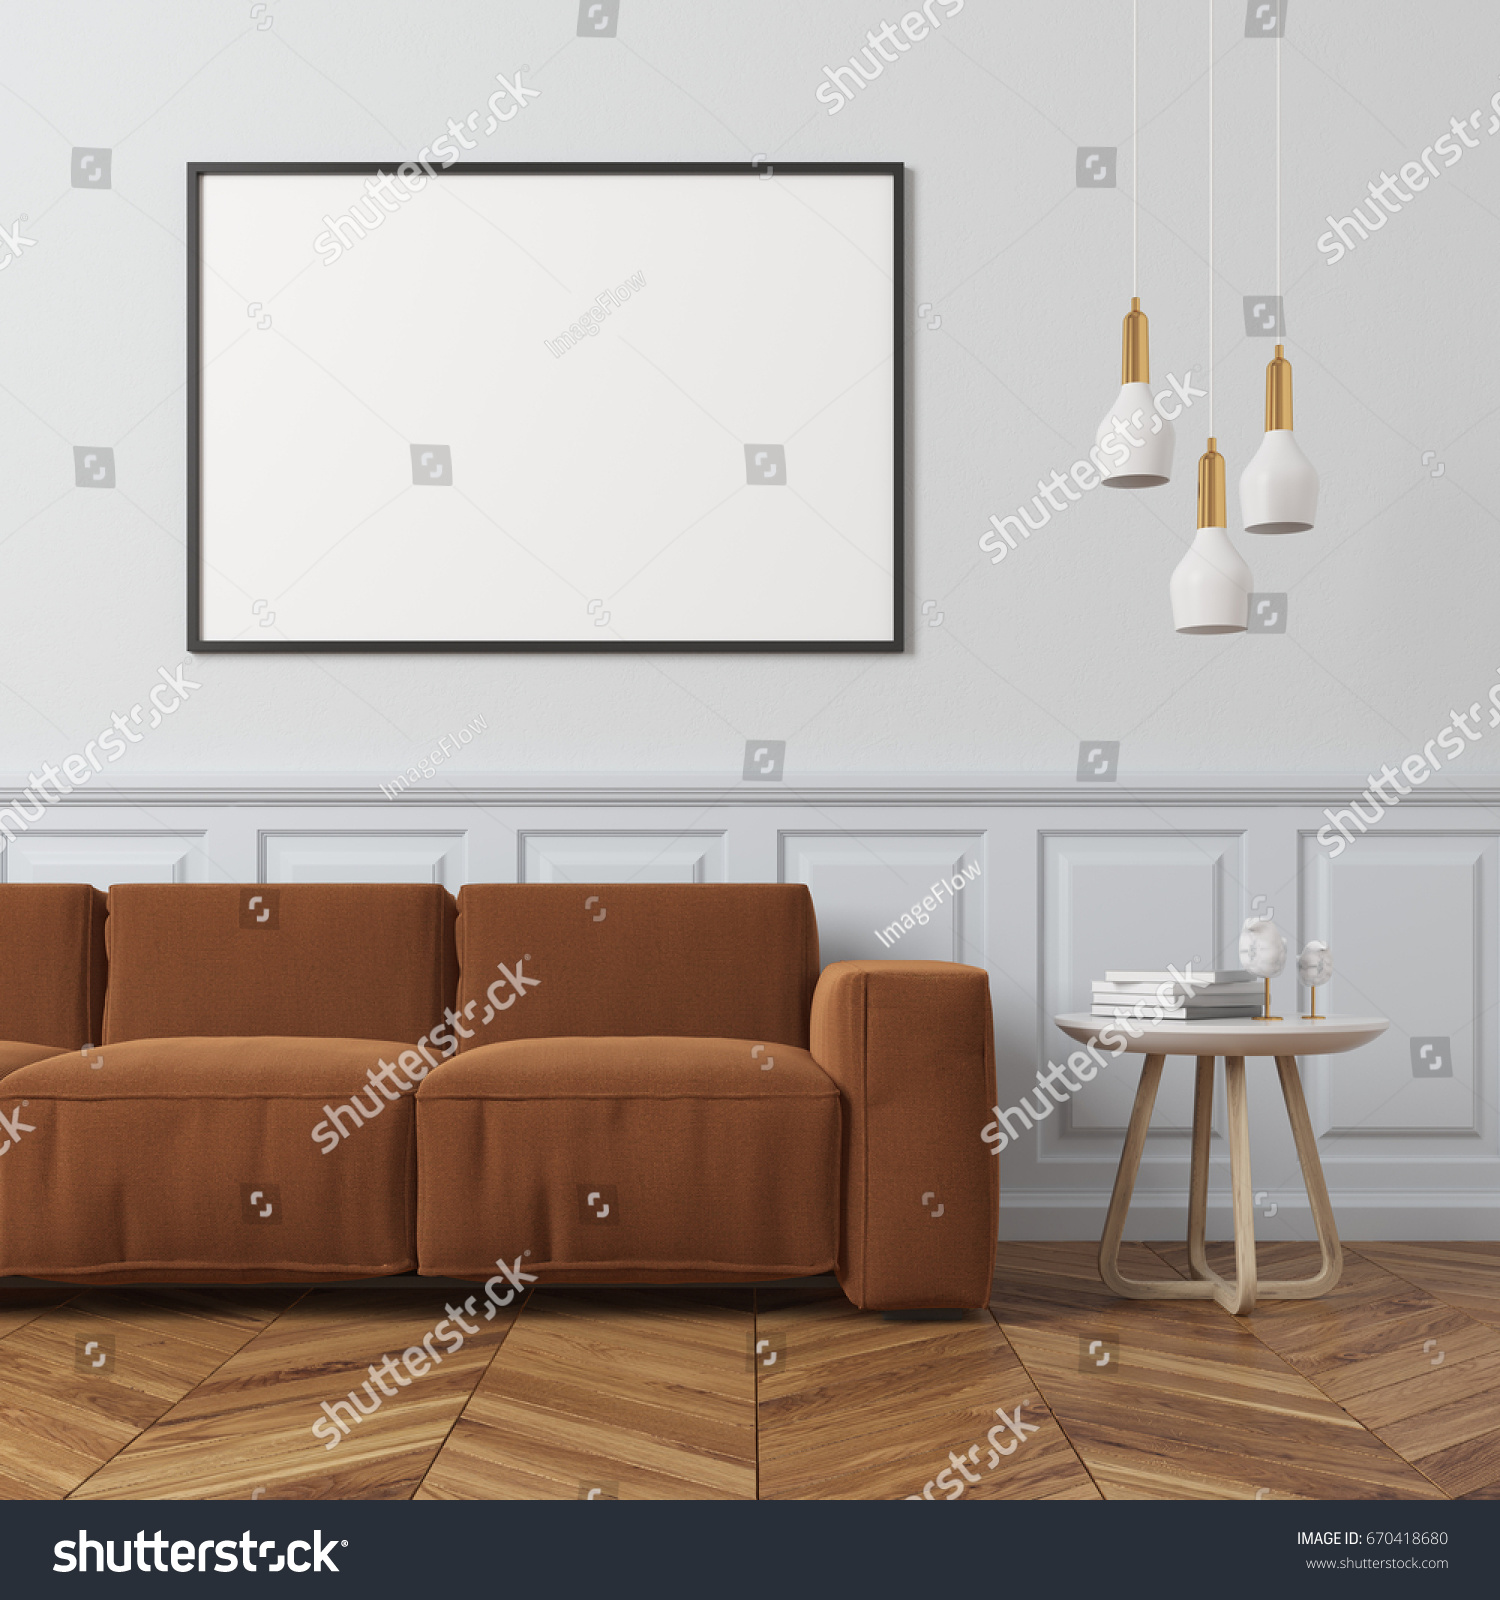 Living Room Interior White Wall Wooden Stock Illustration 670418680 ...